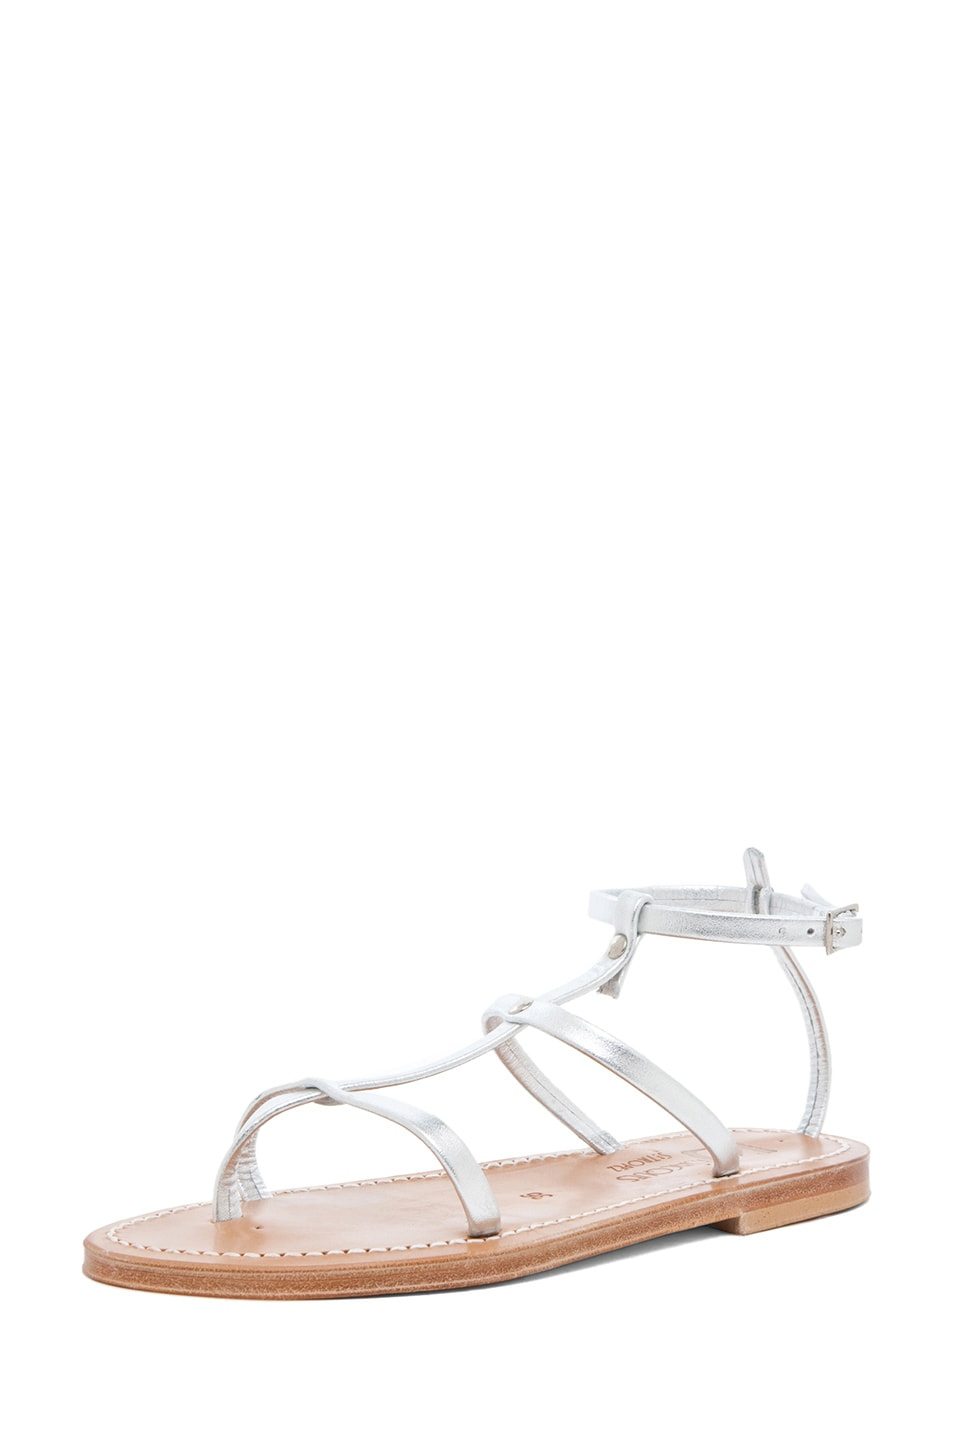 Image 2 of K Jacques Gina Calfskin Gladiator Sandal in Silver